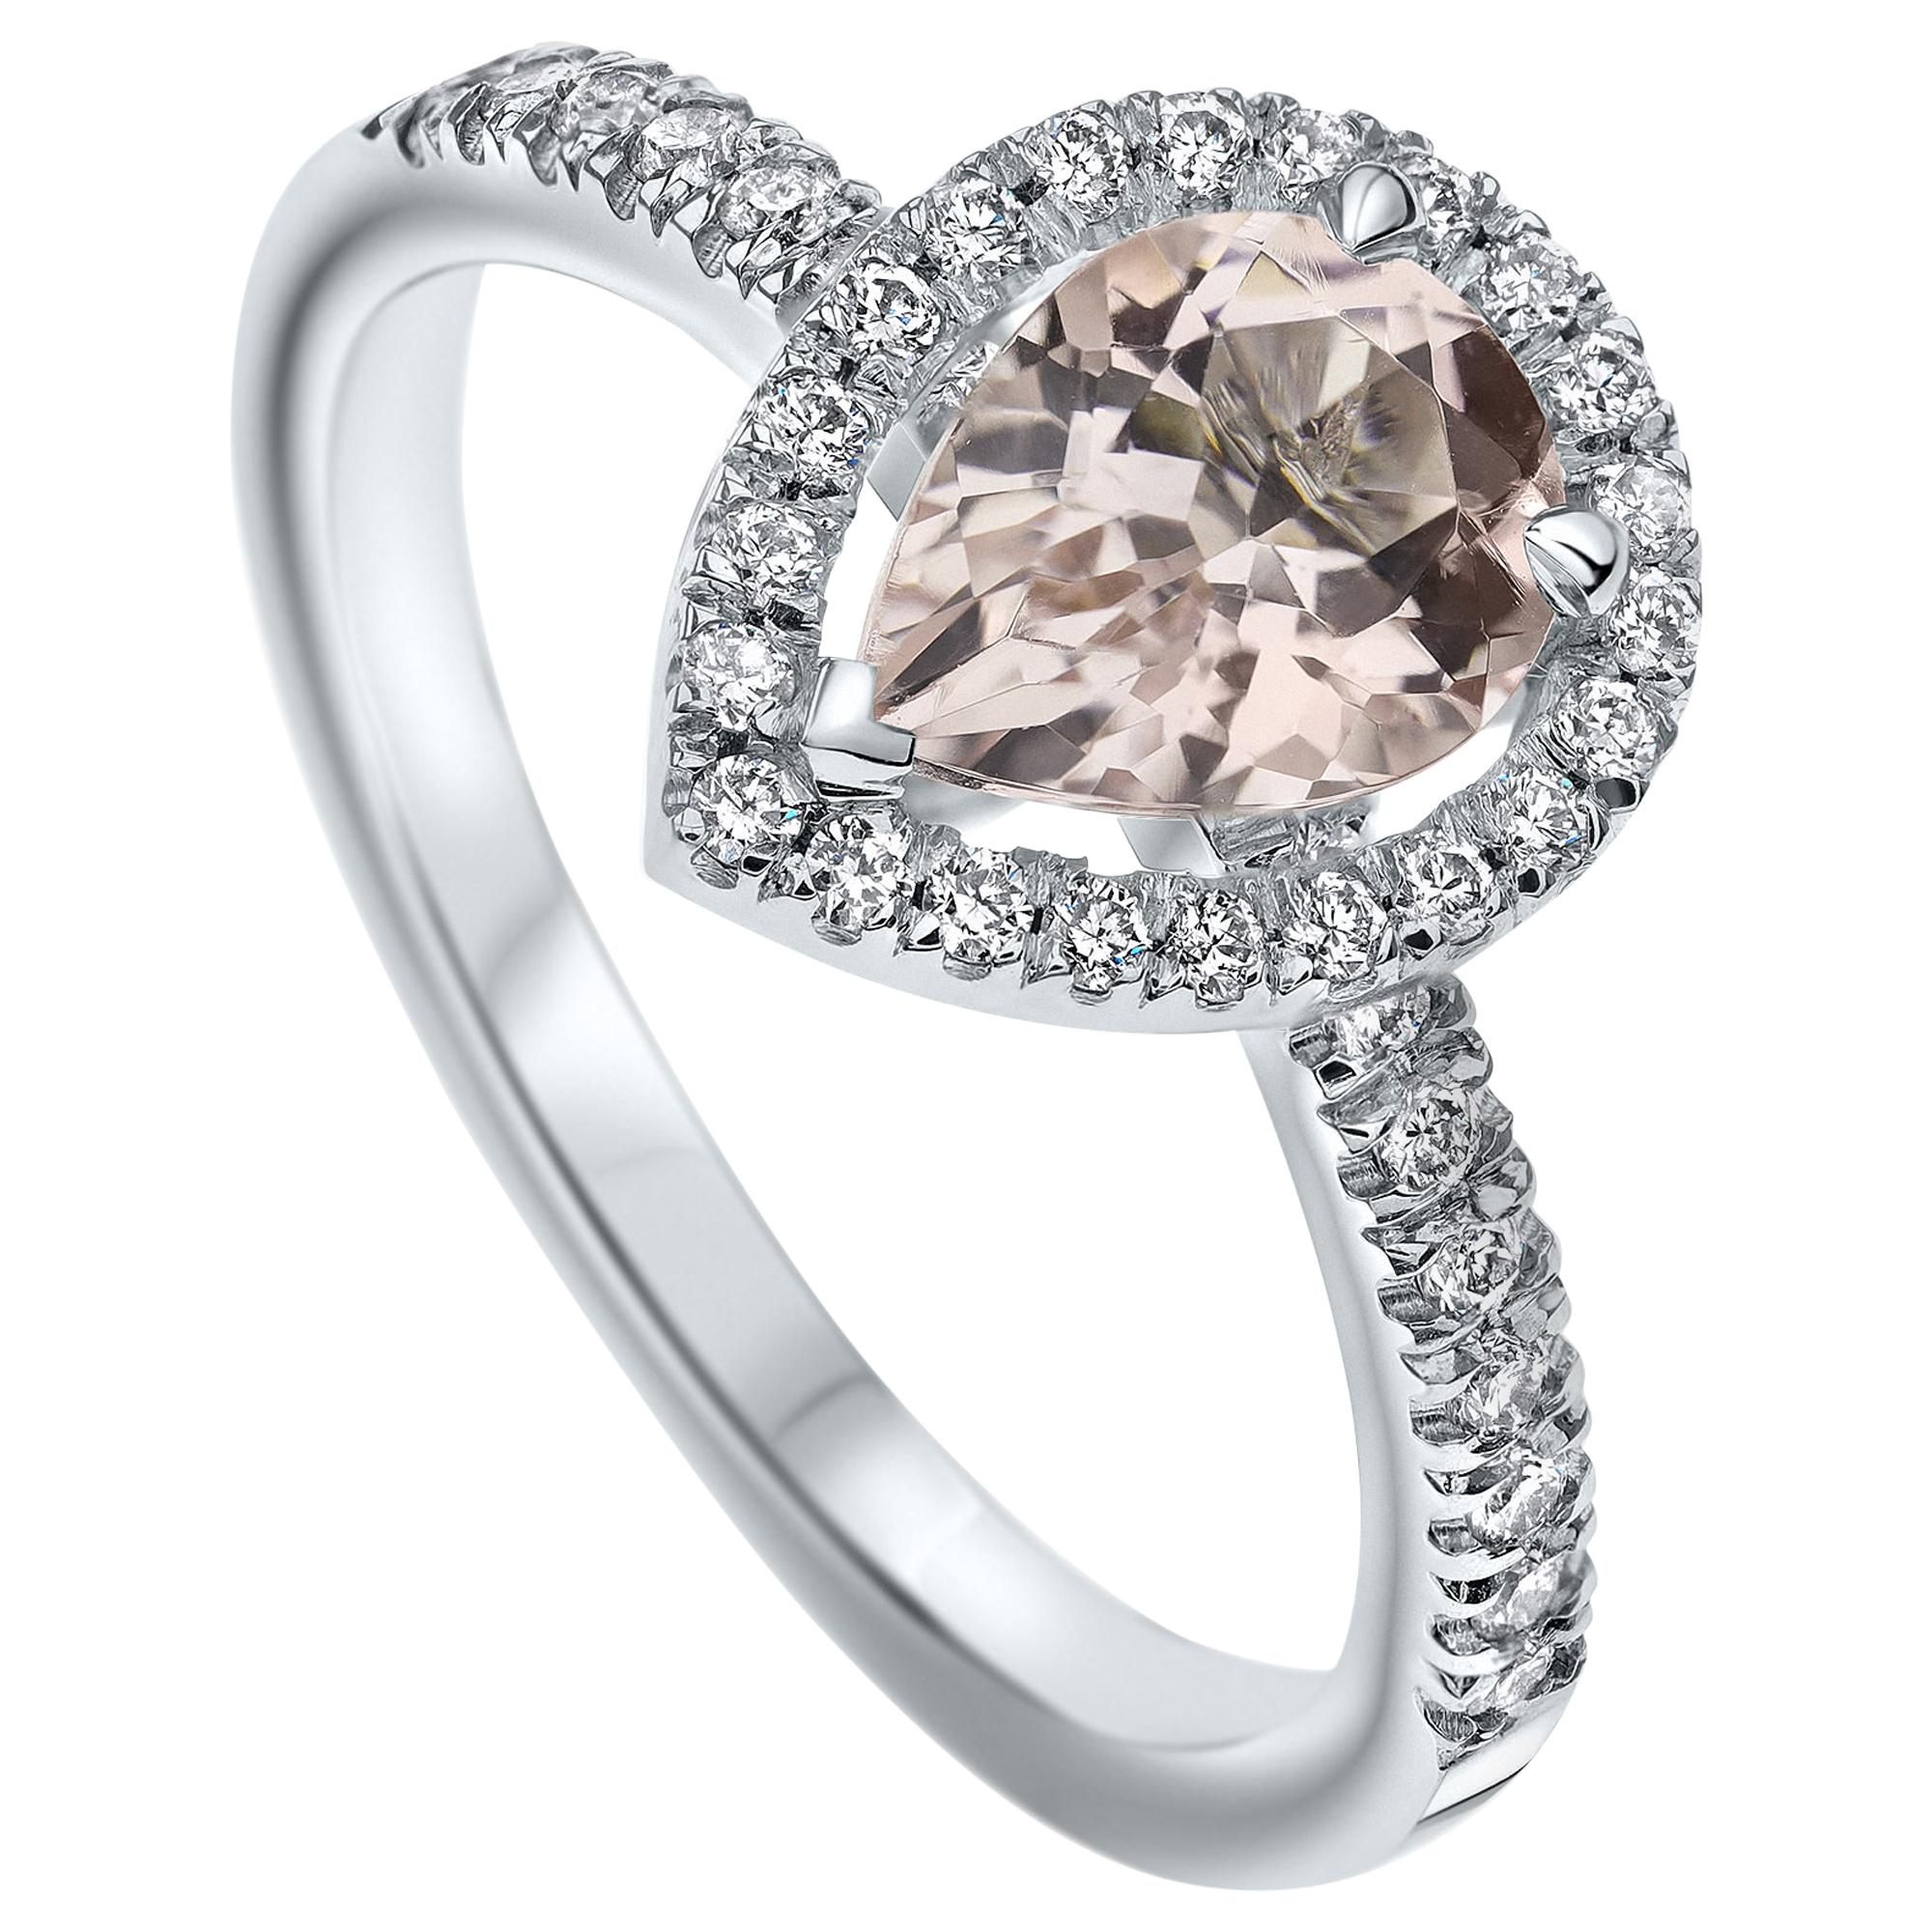 Pear Morganite and Diamonds Ring 14 Karat in White Gold by Shlomit Rogel